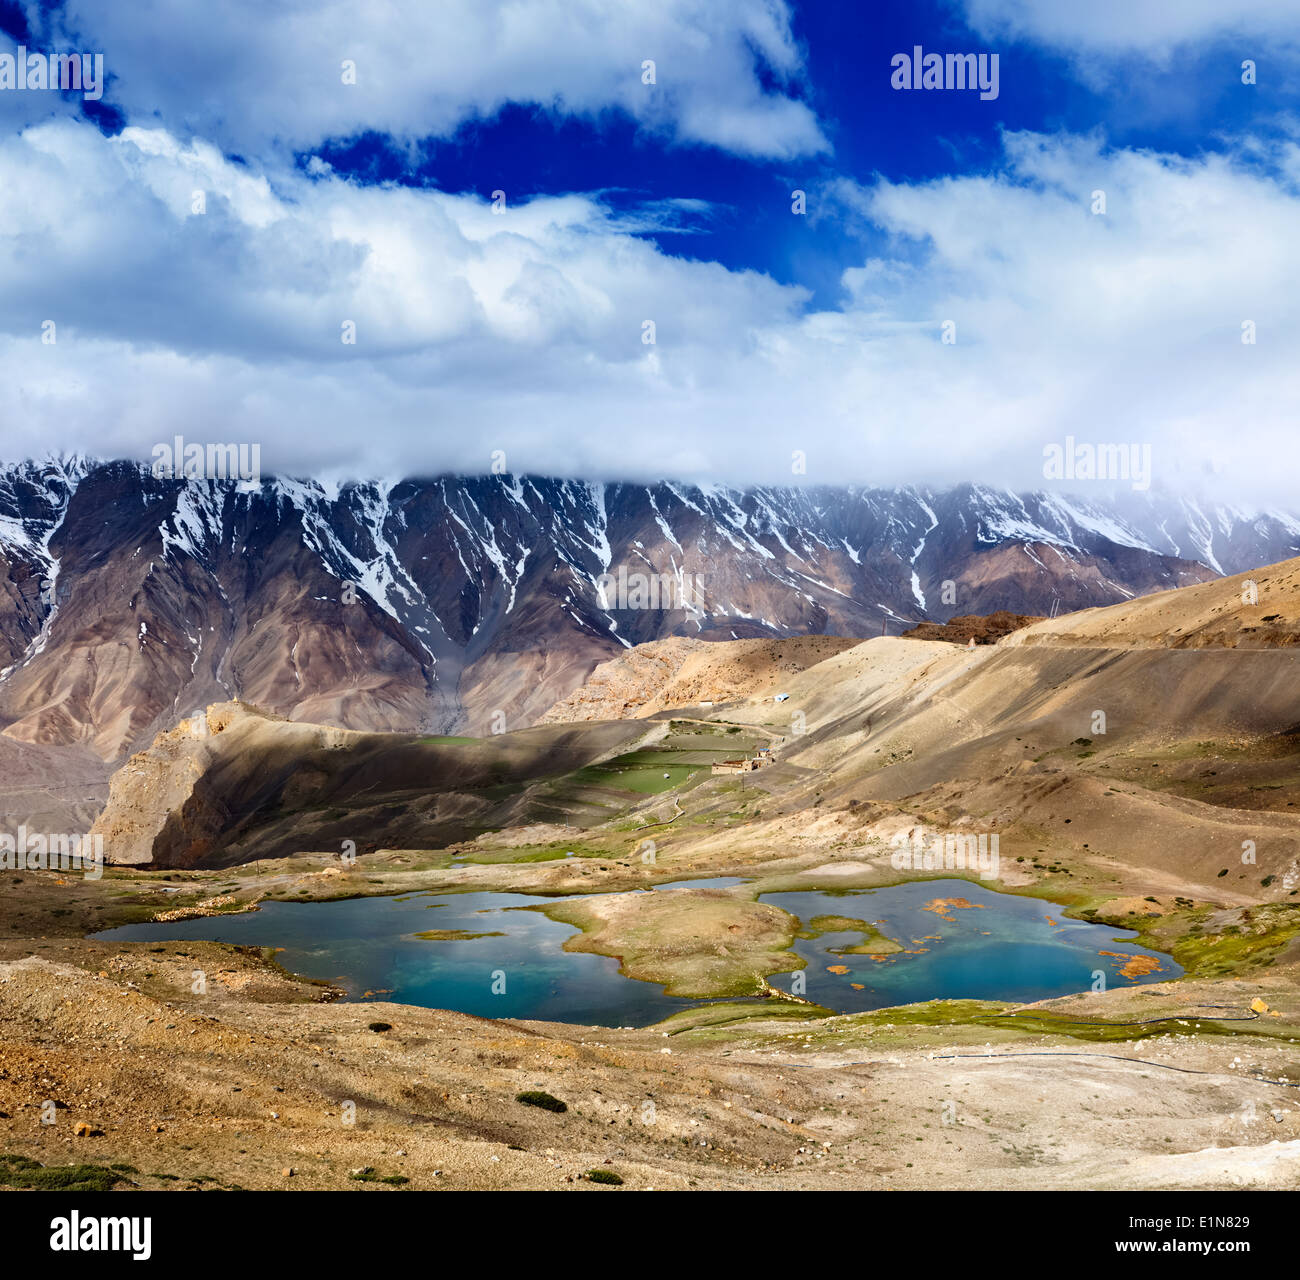 Vintage retro effect filtered hipster style travel image of mountain lakes in Spiti Valley in Himalayas. Himachal Pradesh, India - Stock Image